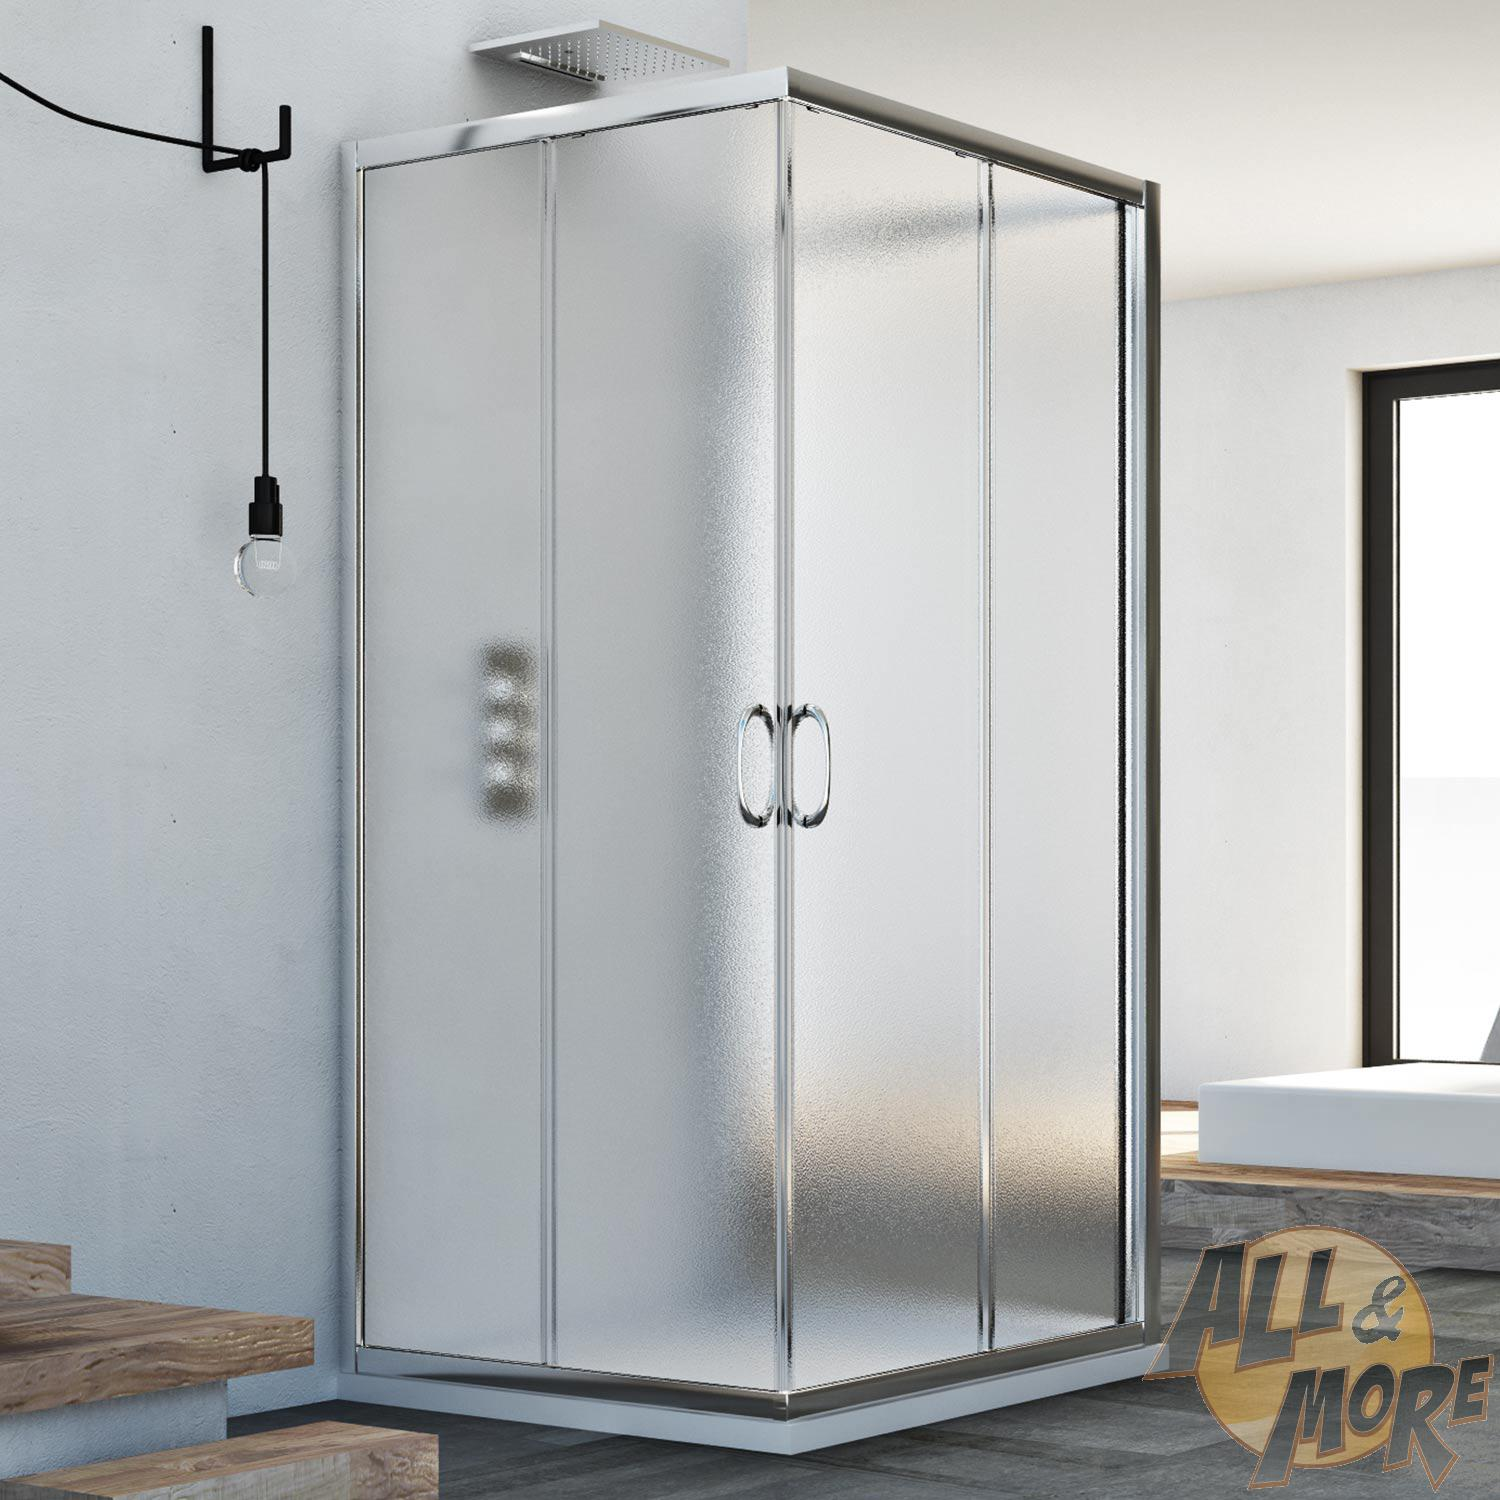 3-SIDED SHOWER CUBICLE ENCLOSURE SHOWER SCREEN GLASS SLIDING DOORS ...